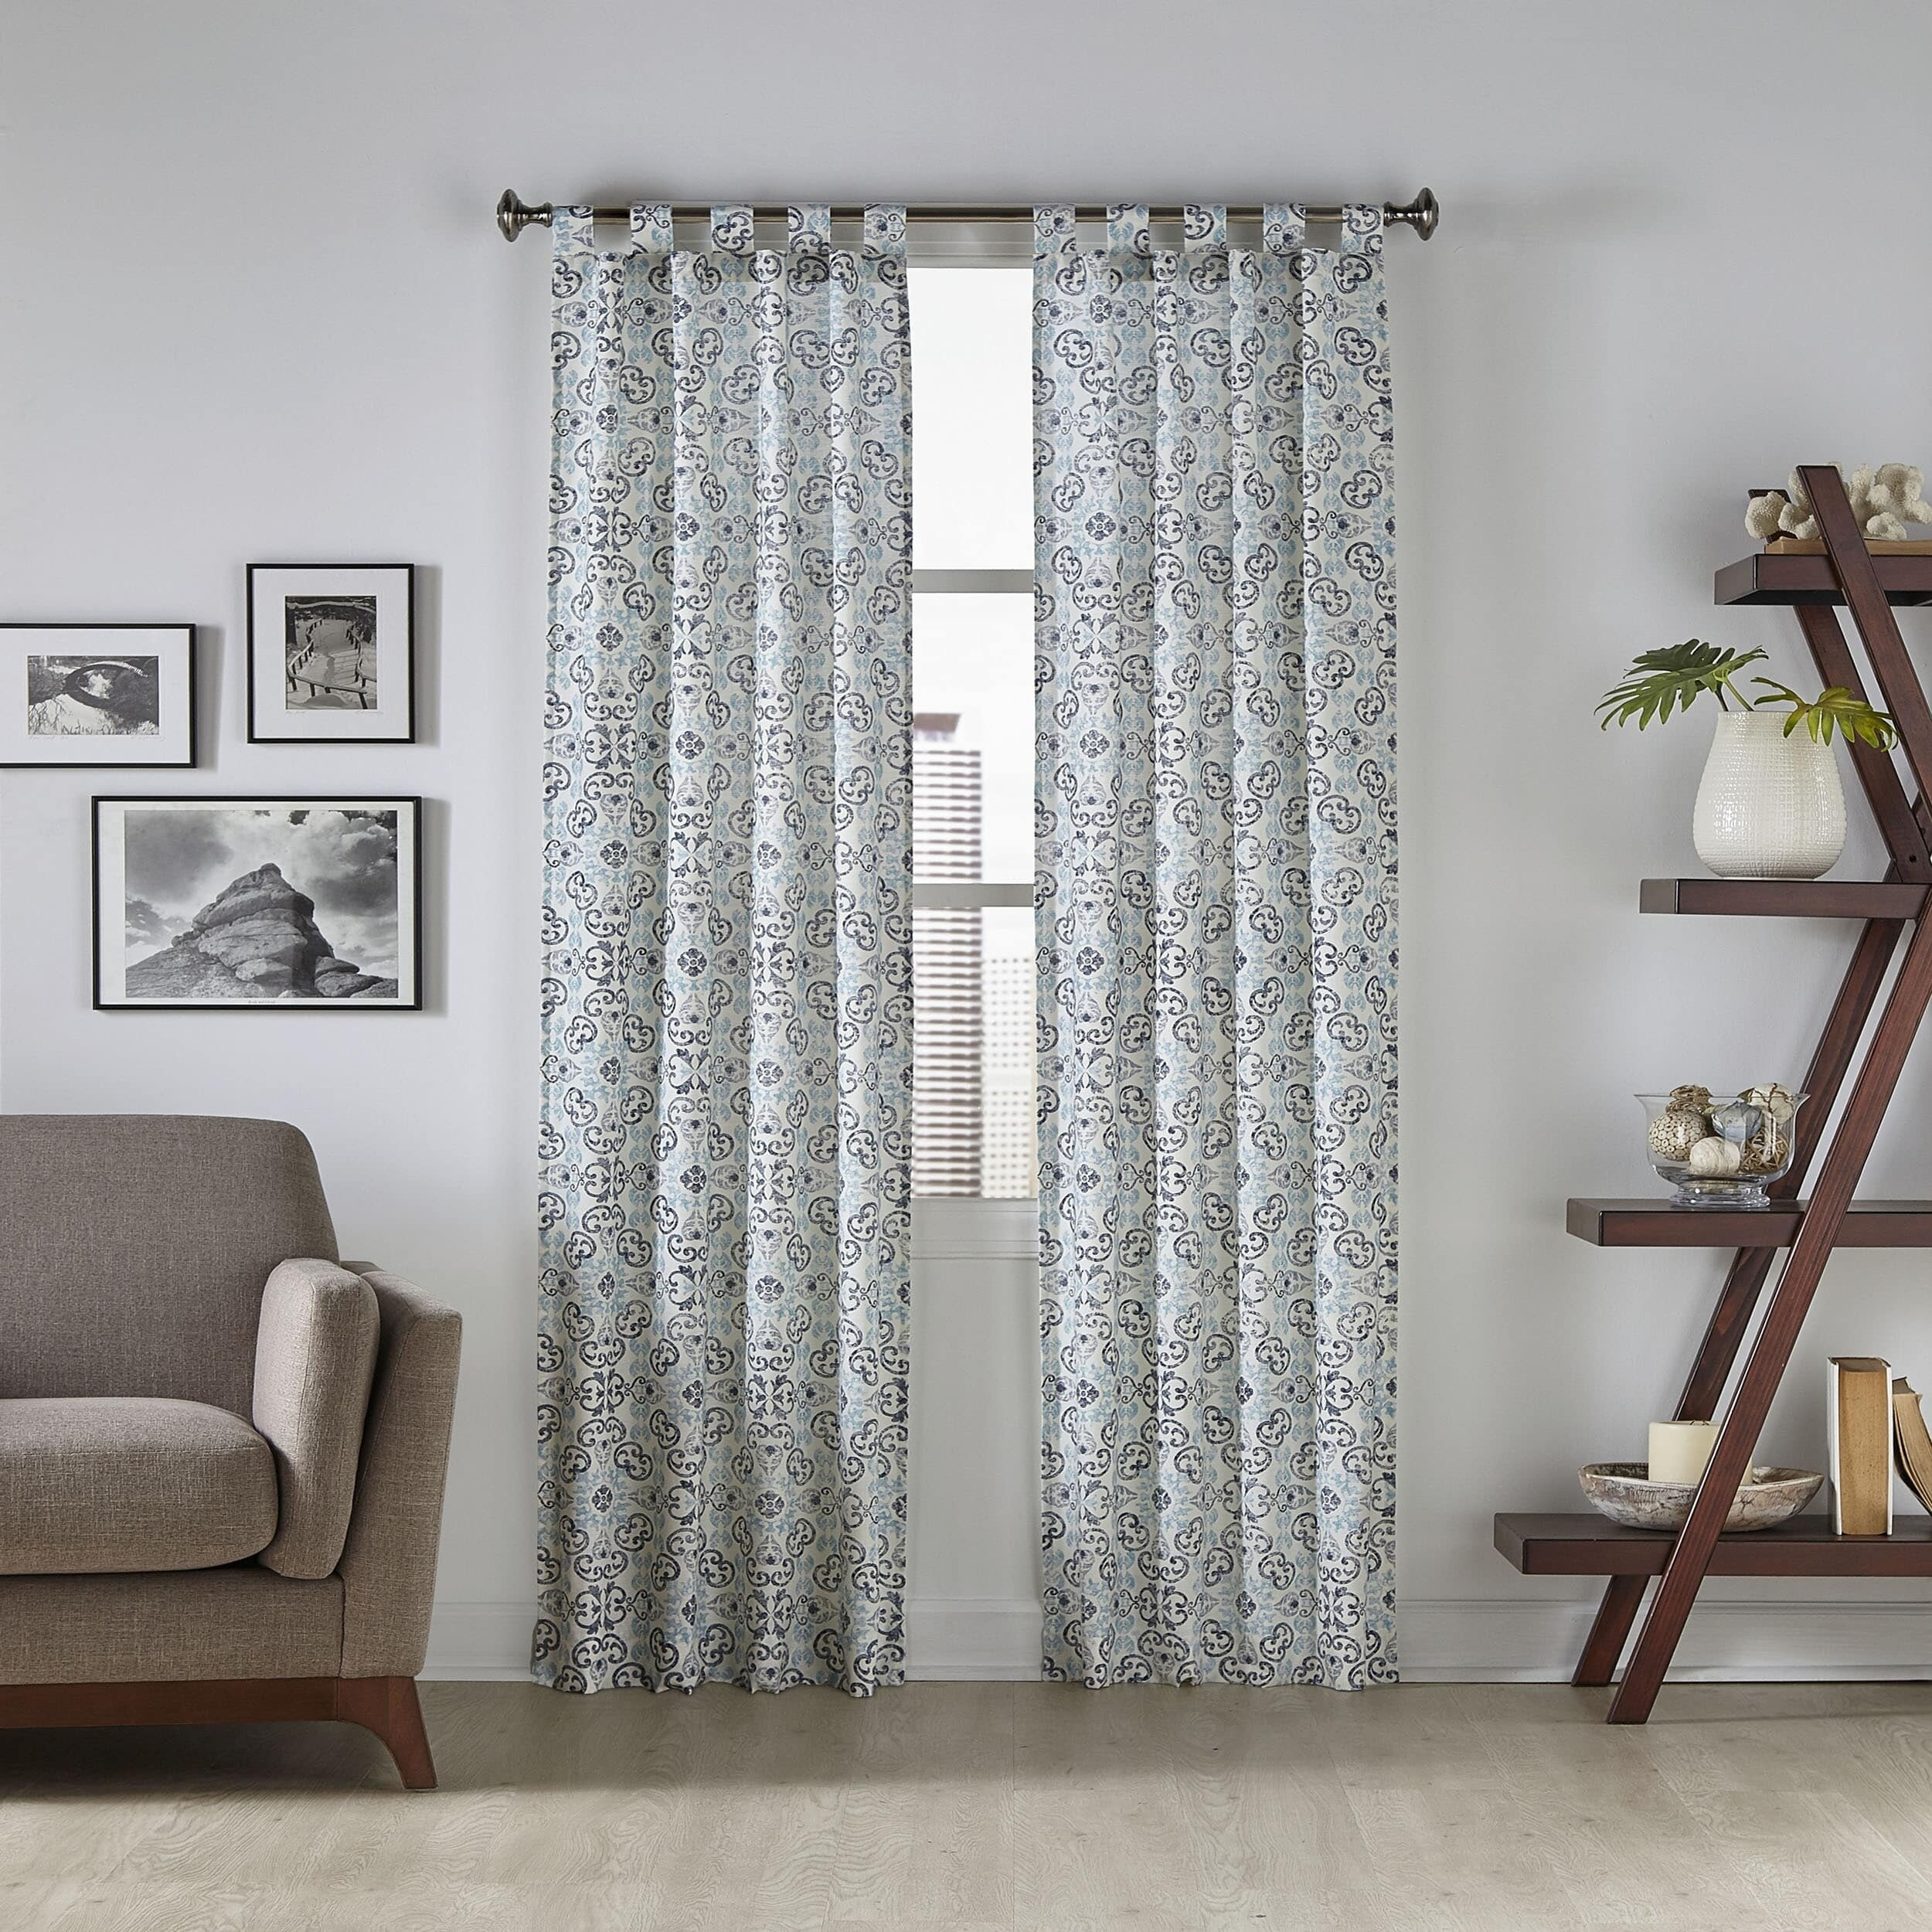 single curtains gold pocket tiers silver panel pleat cotton rod inch pencil room pair plastic awesome sports holdbacks length care hardware noise patchwork included curtain easy metal sets rings max white chevron darkening blackout modern cottage adult